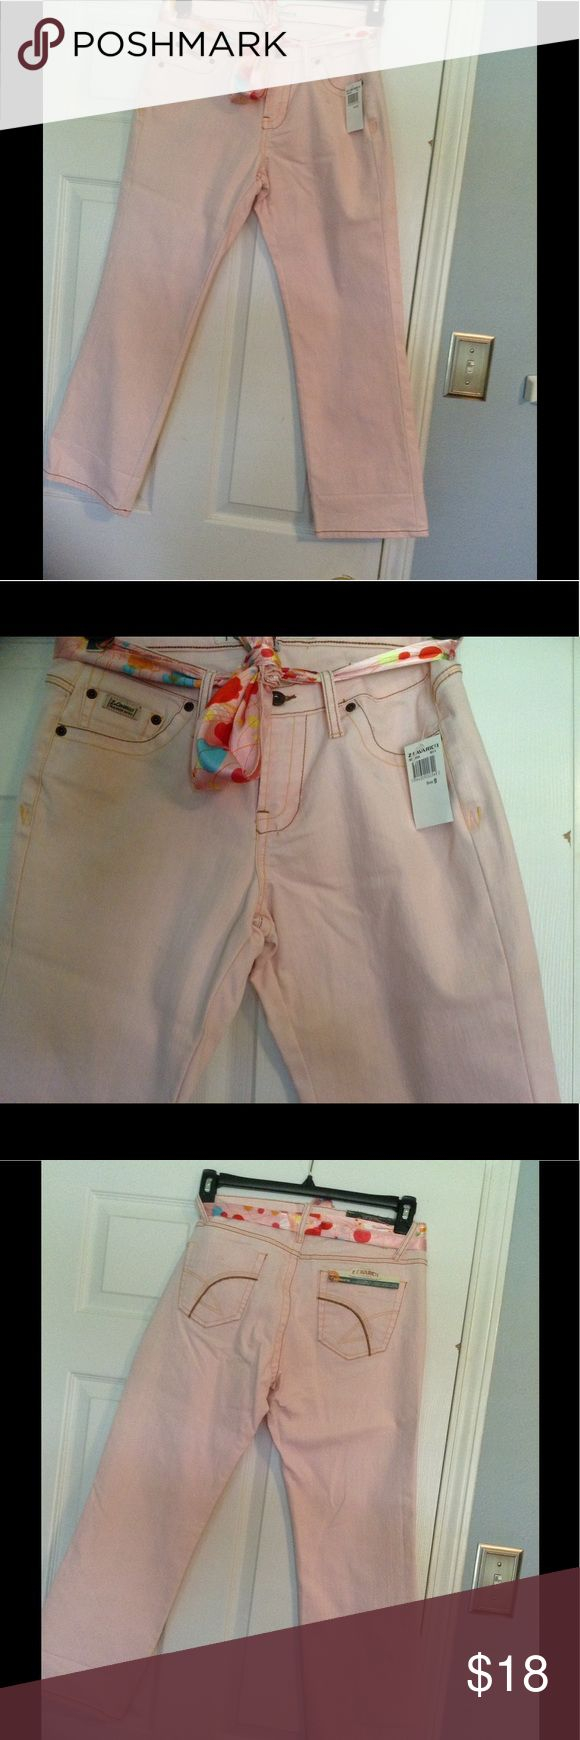 Z Cavaricci Light Pink Jeans never been worn z cavaricci Jeans Ankle & Cropped